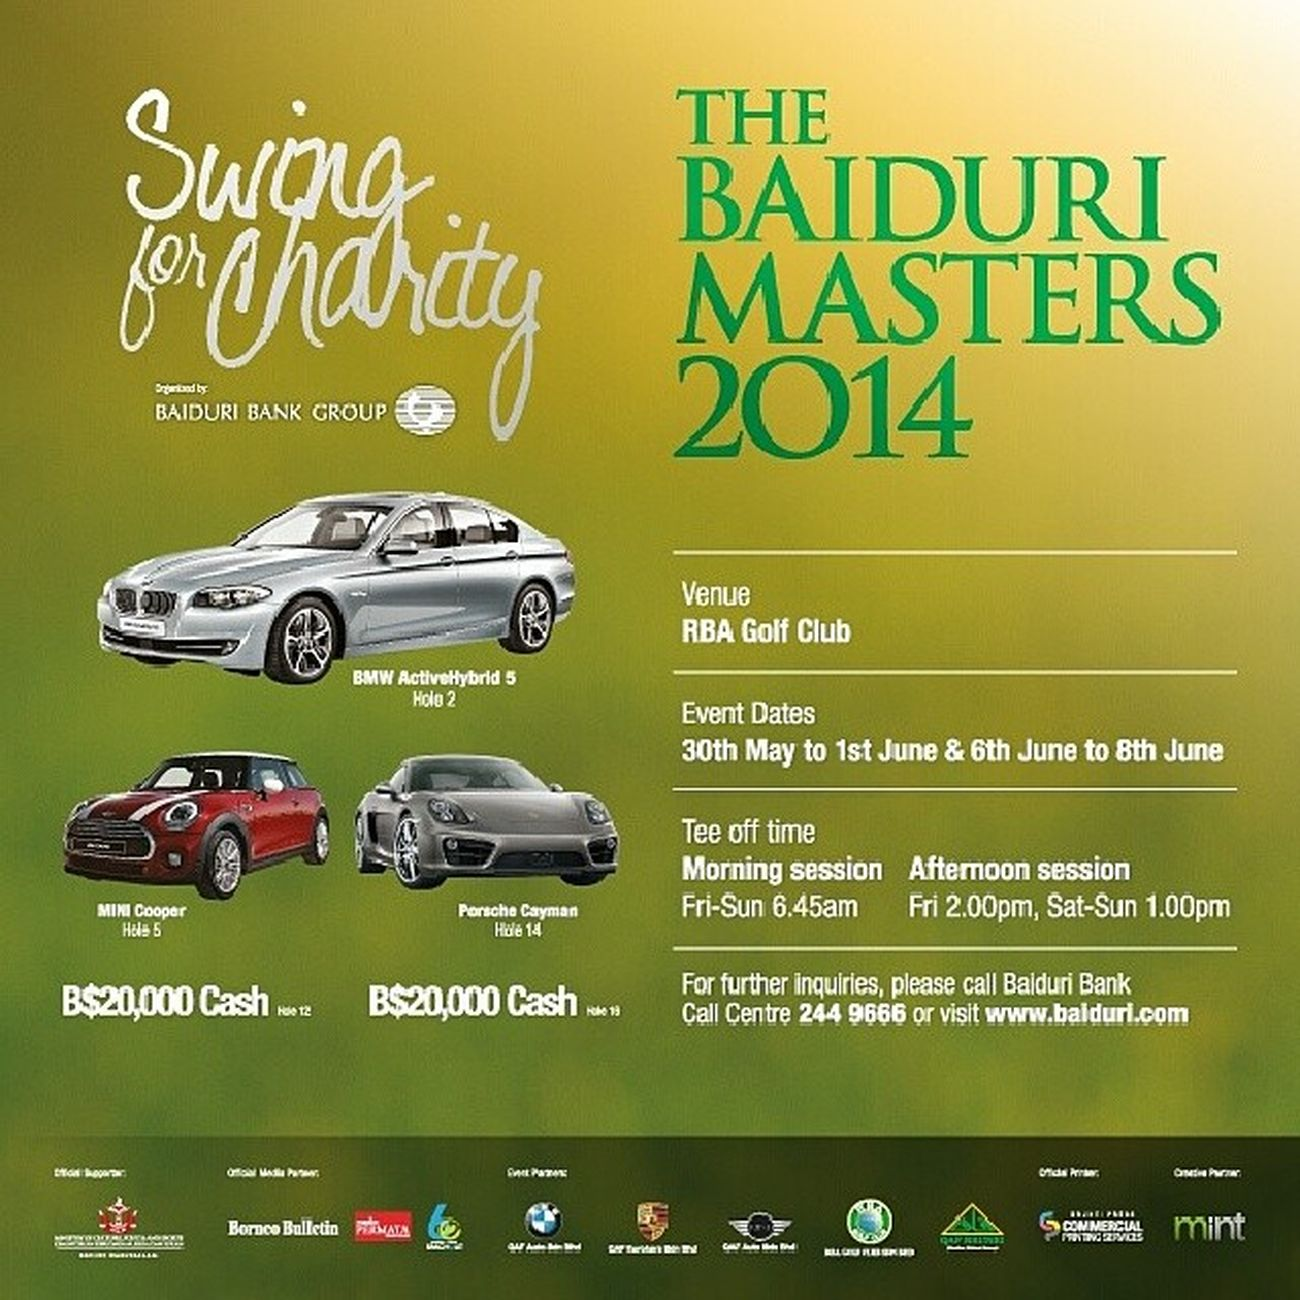 Details on the Baidurimasters2014 will be up on www.baiduri.com soon! Stay tuned! Baiduribank Baiduricsr Brunei HappeningsBN